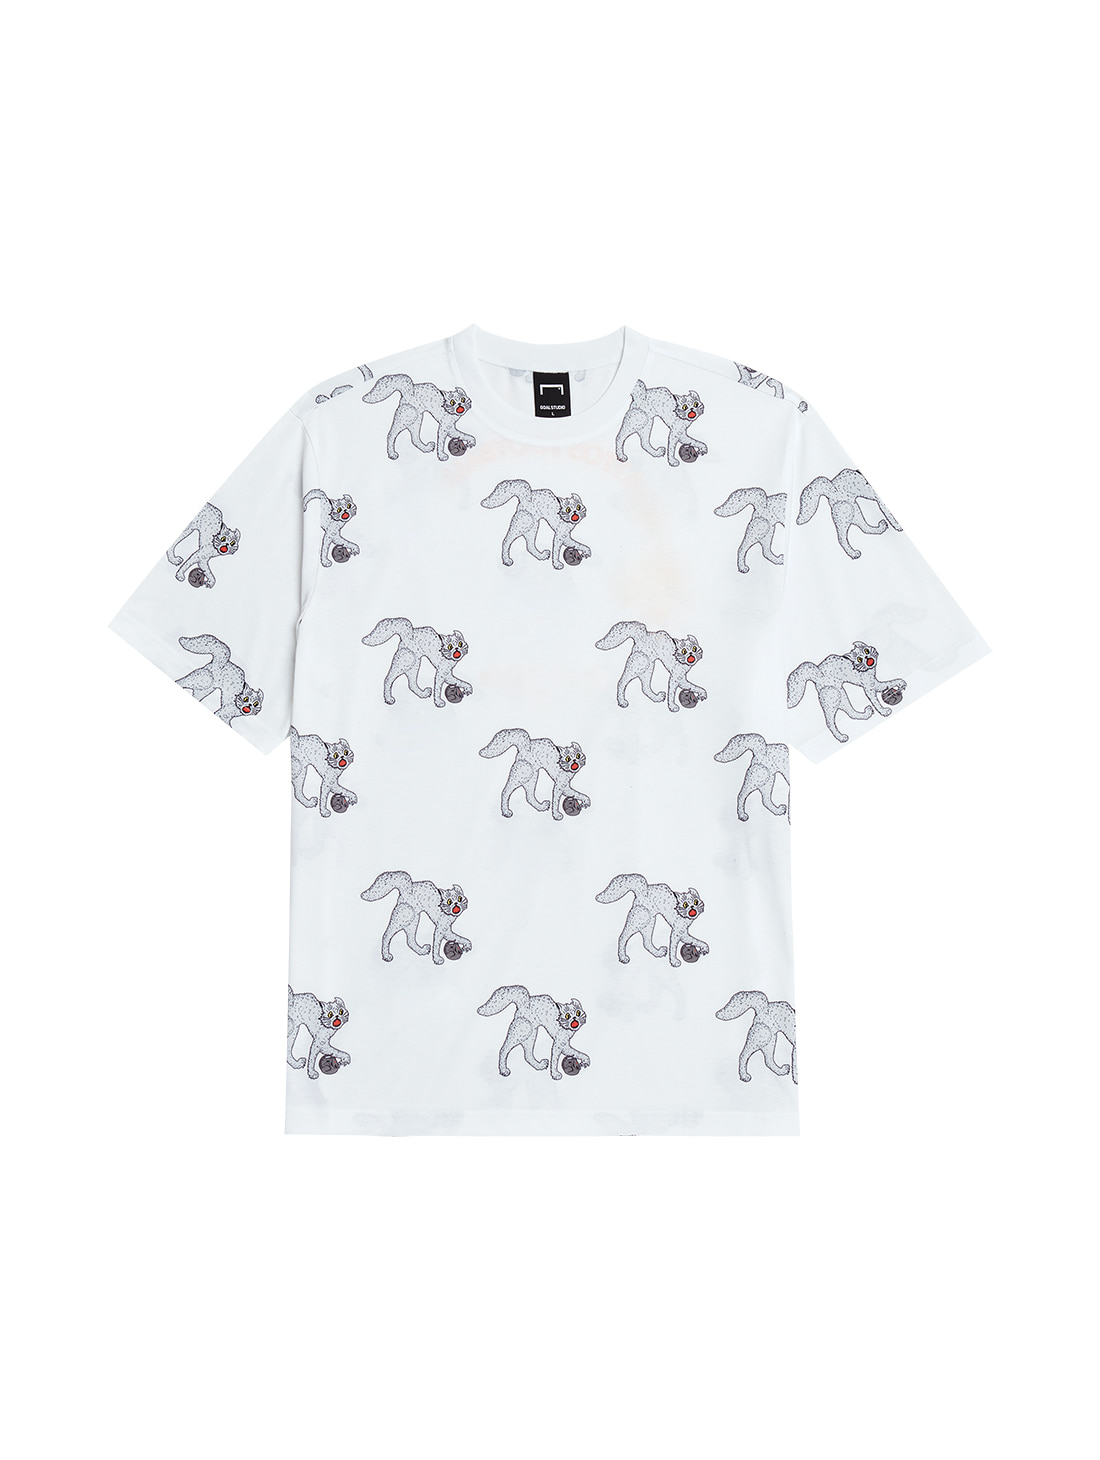 MC ALL OVER PATTERN TEE - WHITE